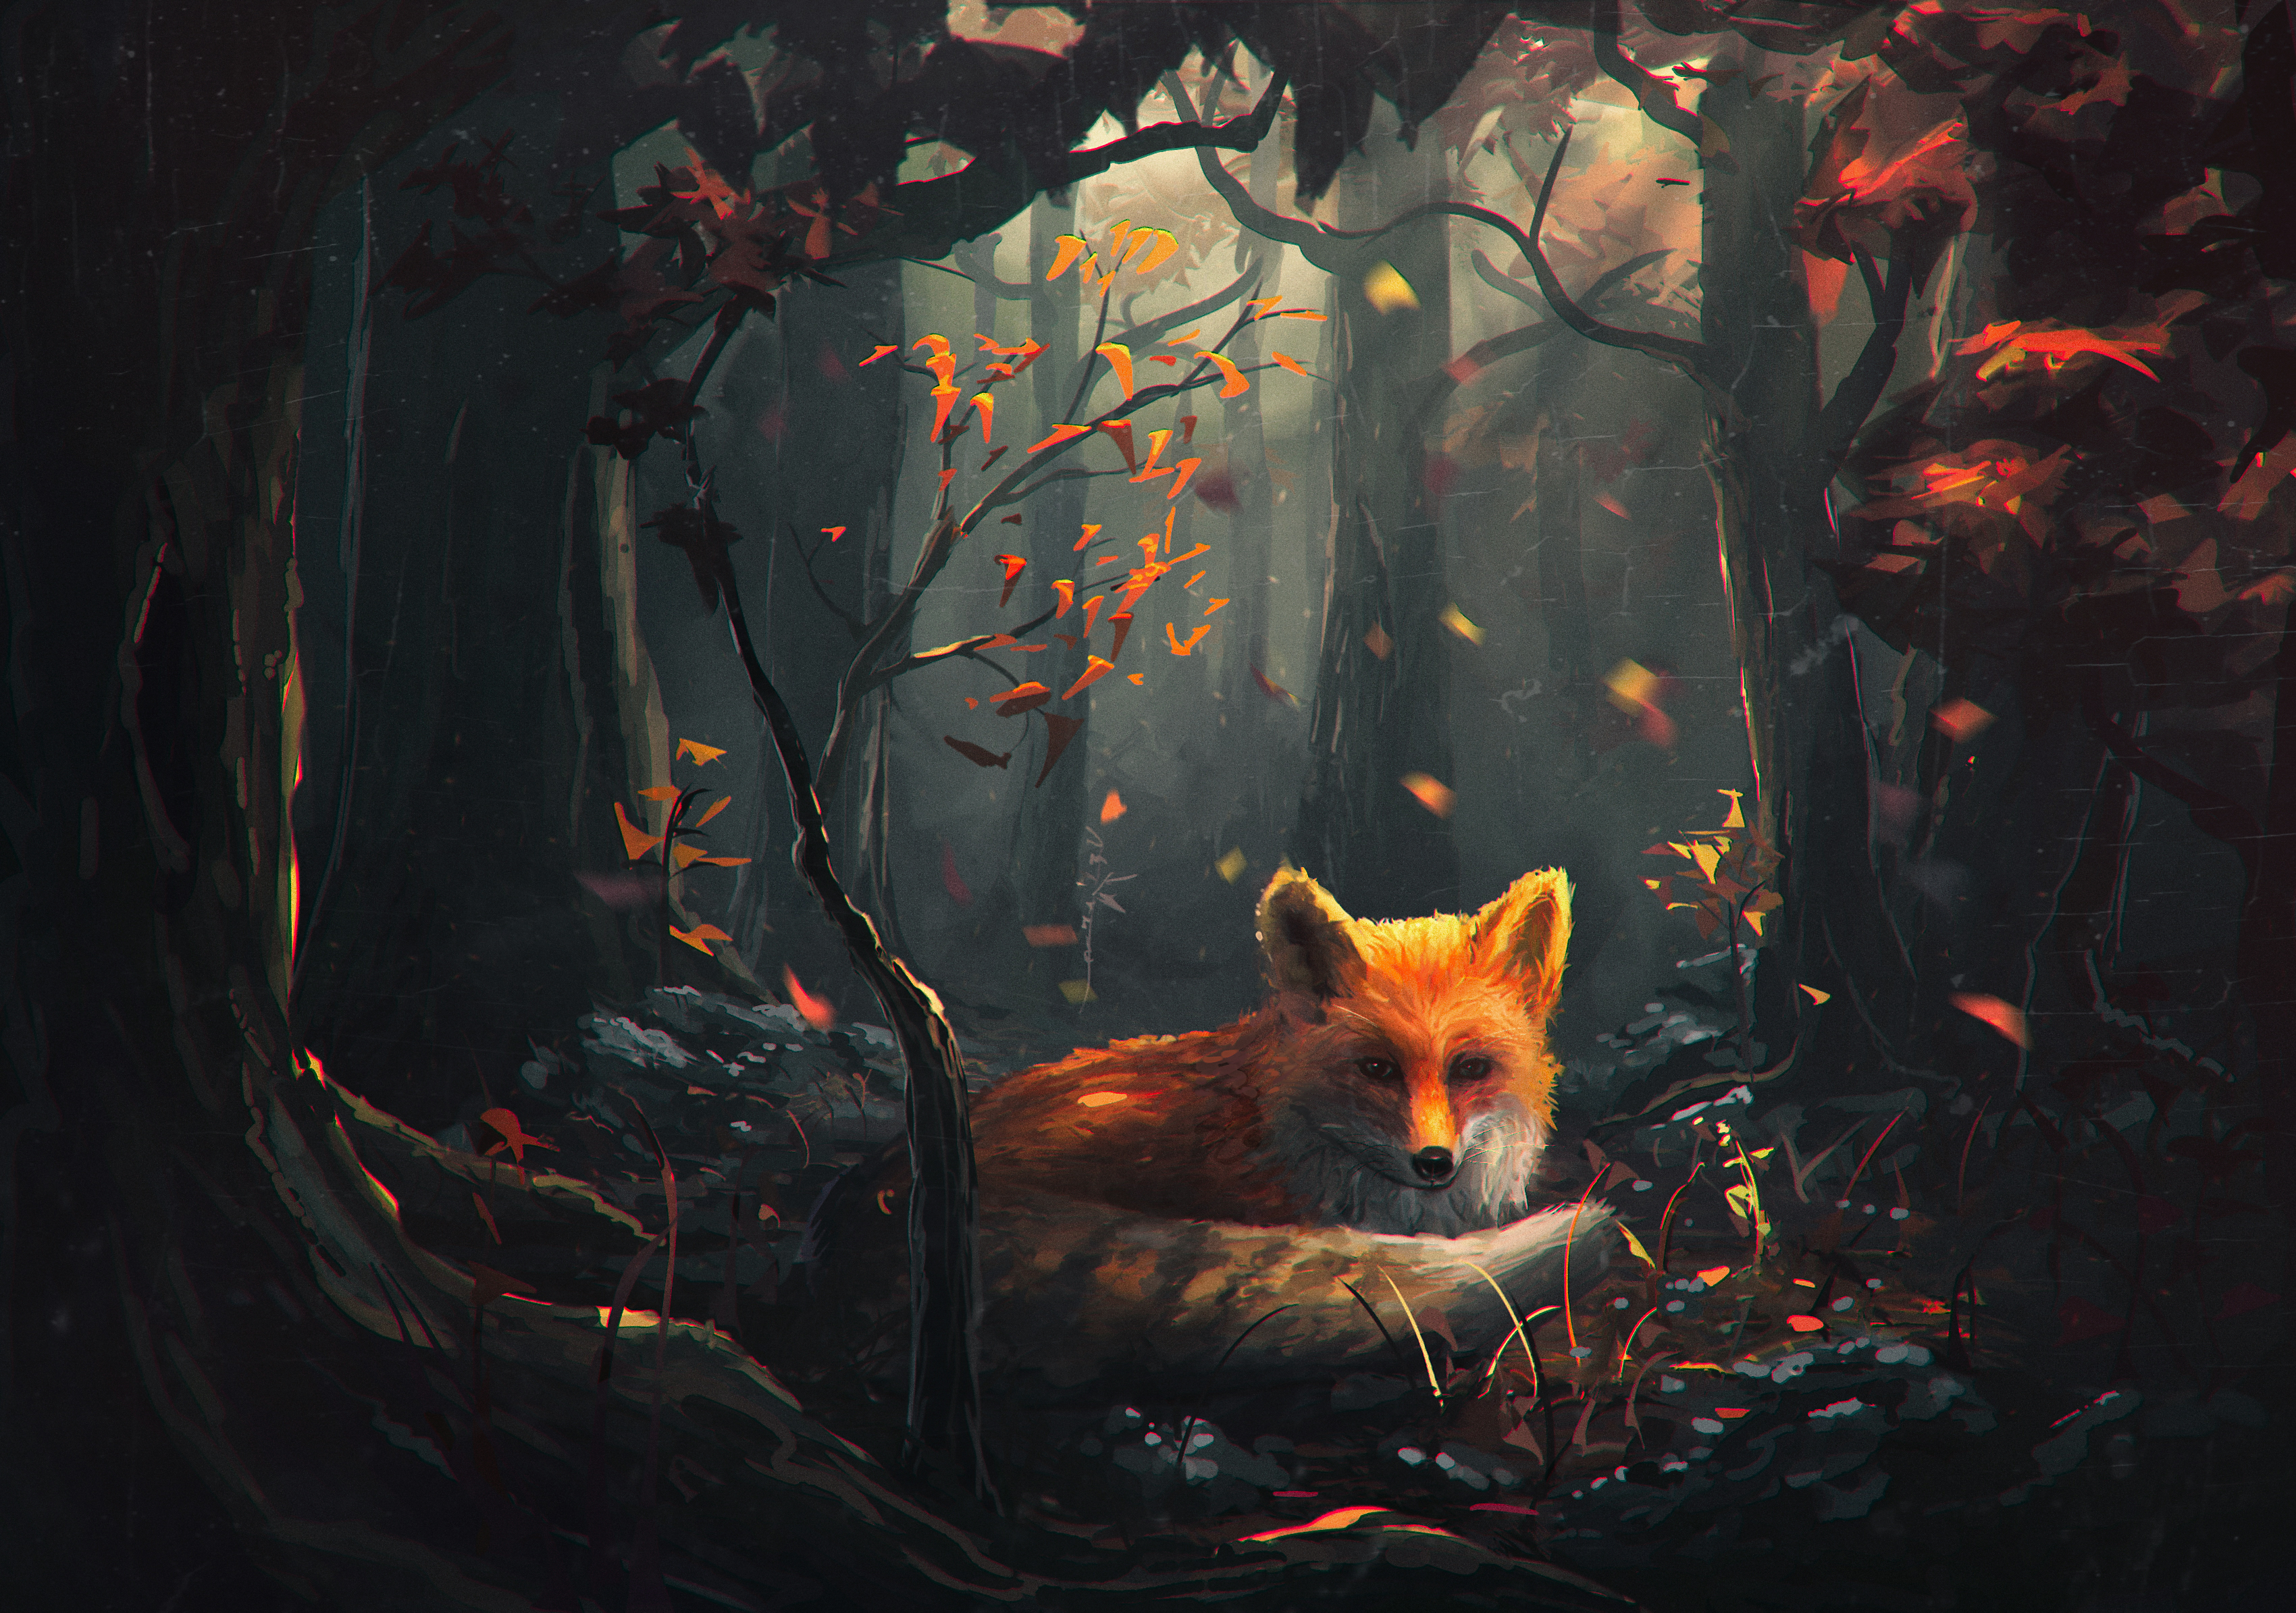 Red Fox In Autumn Forest Fondo De Pantalla Hd Fondo De